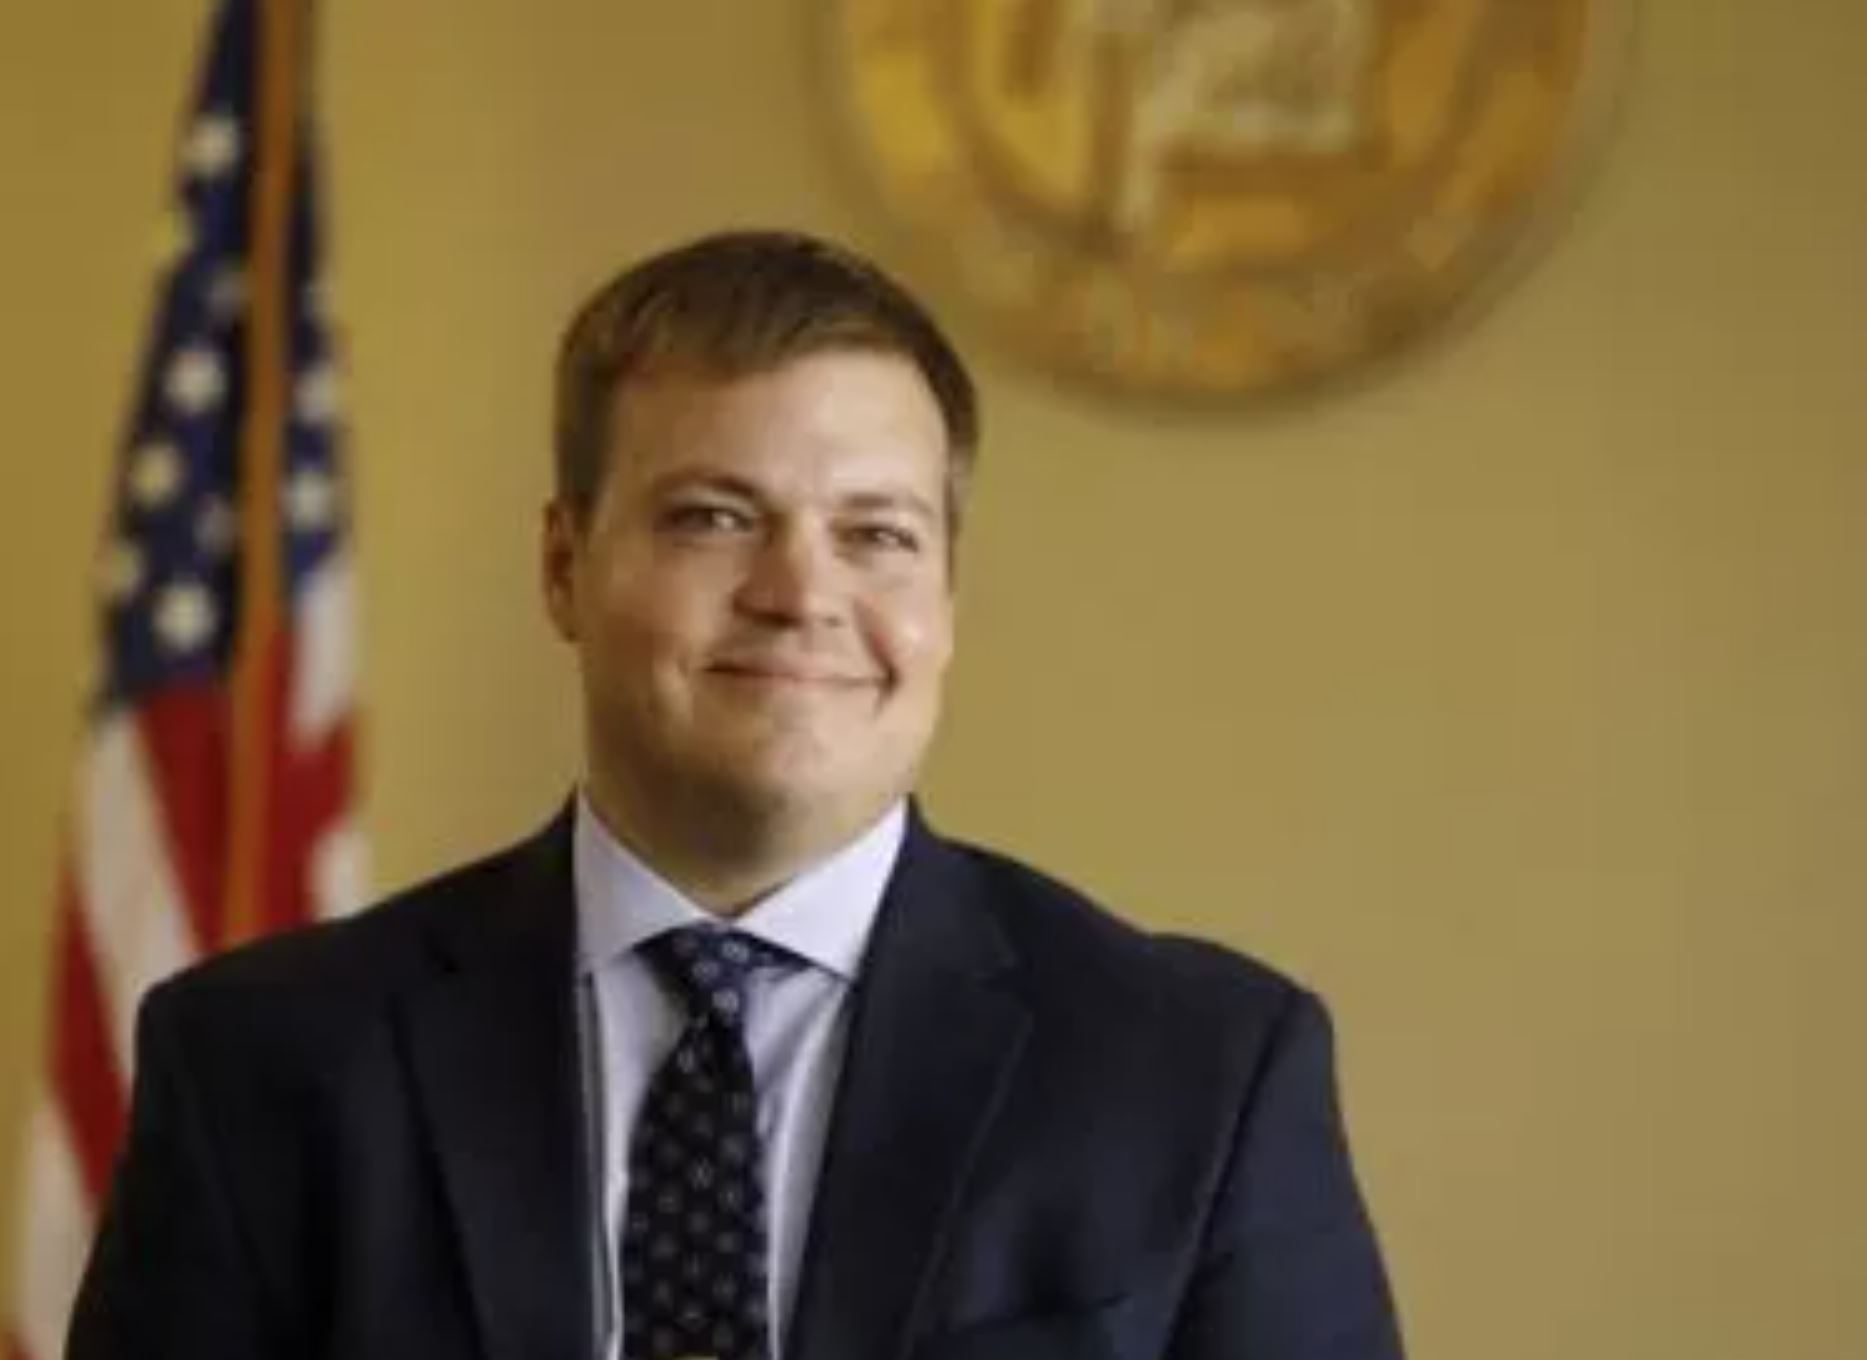 Lee County District Attorney arrested on ethics violation charges